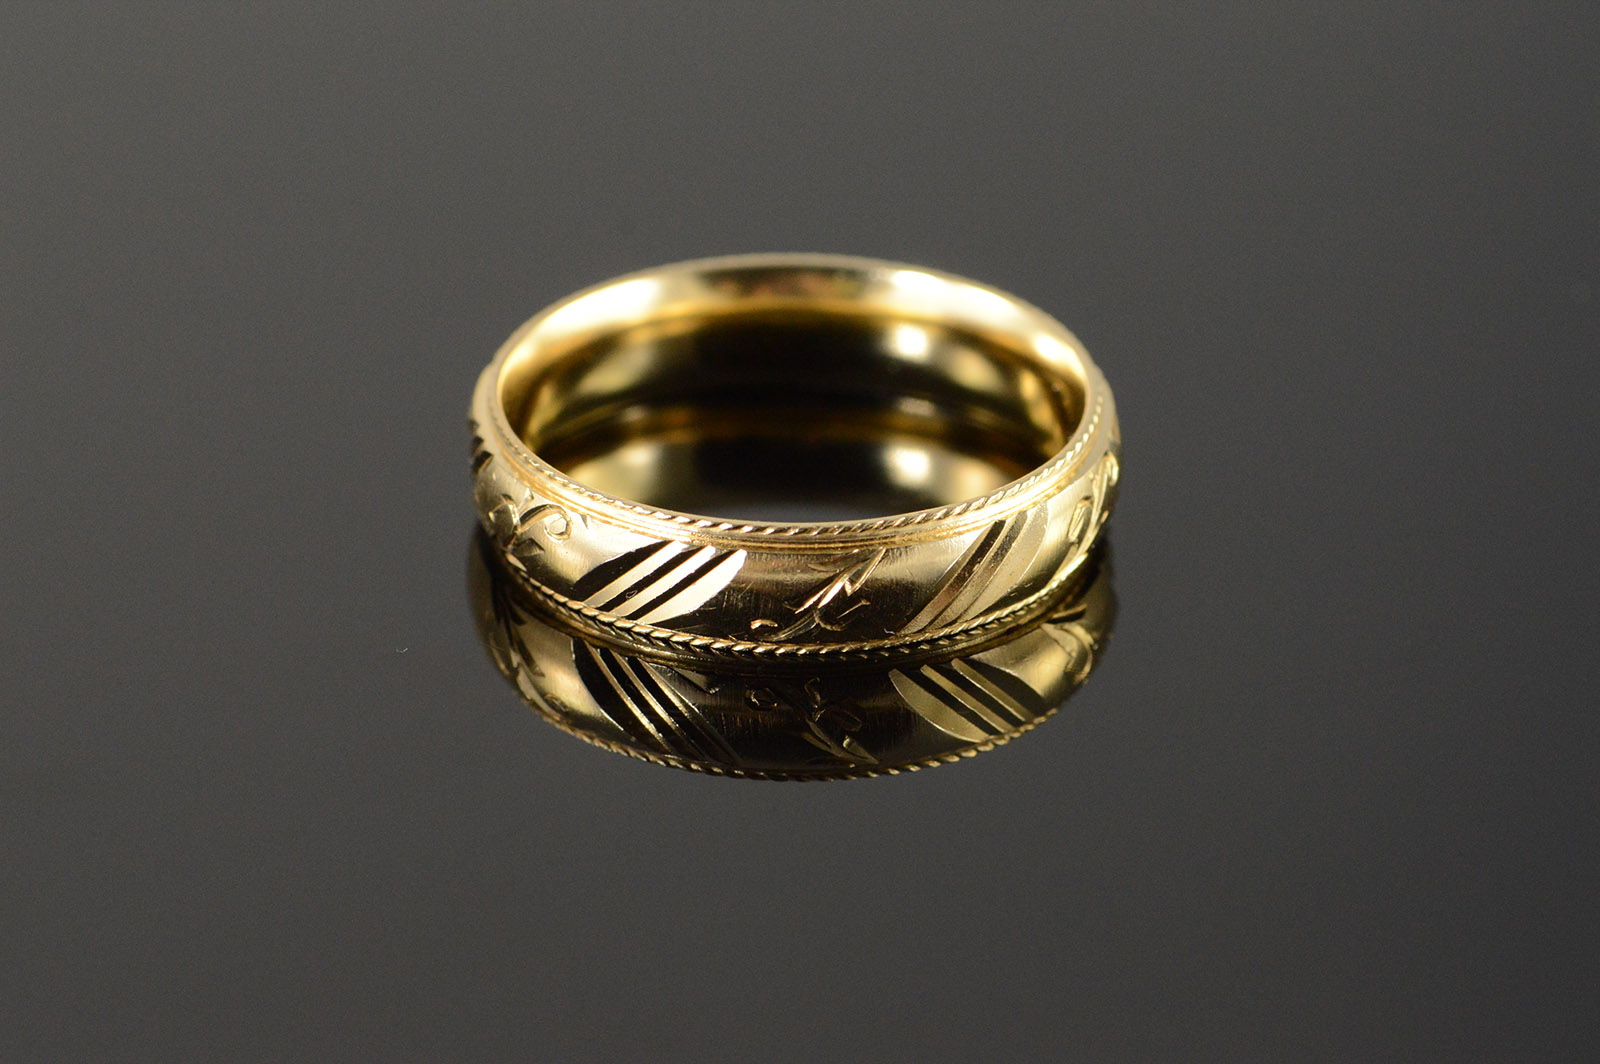 14k Beautiful Carved Engraved Fancy Wedding Band Men S Yellow Gold